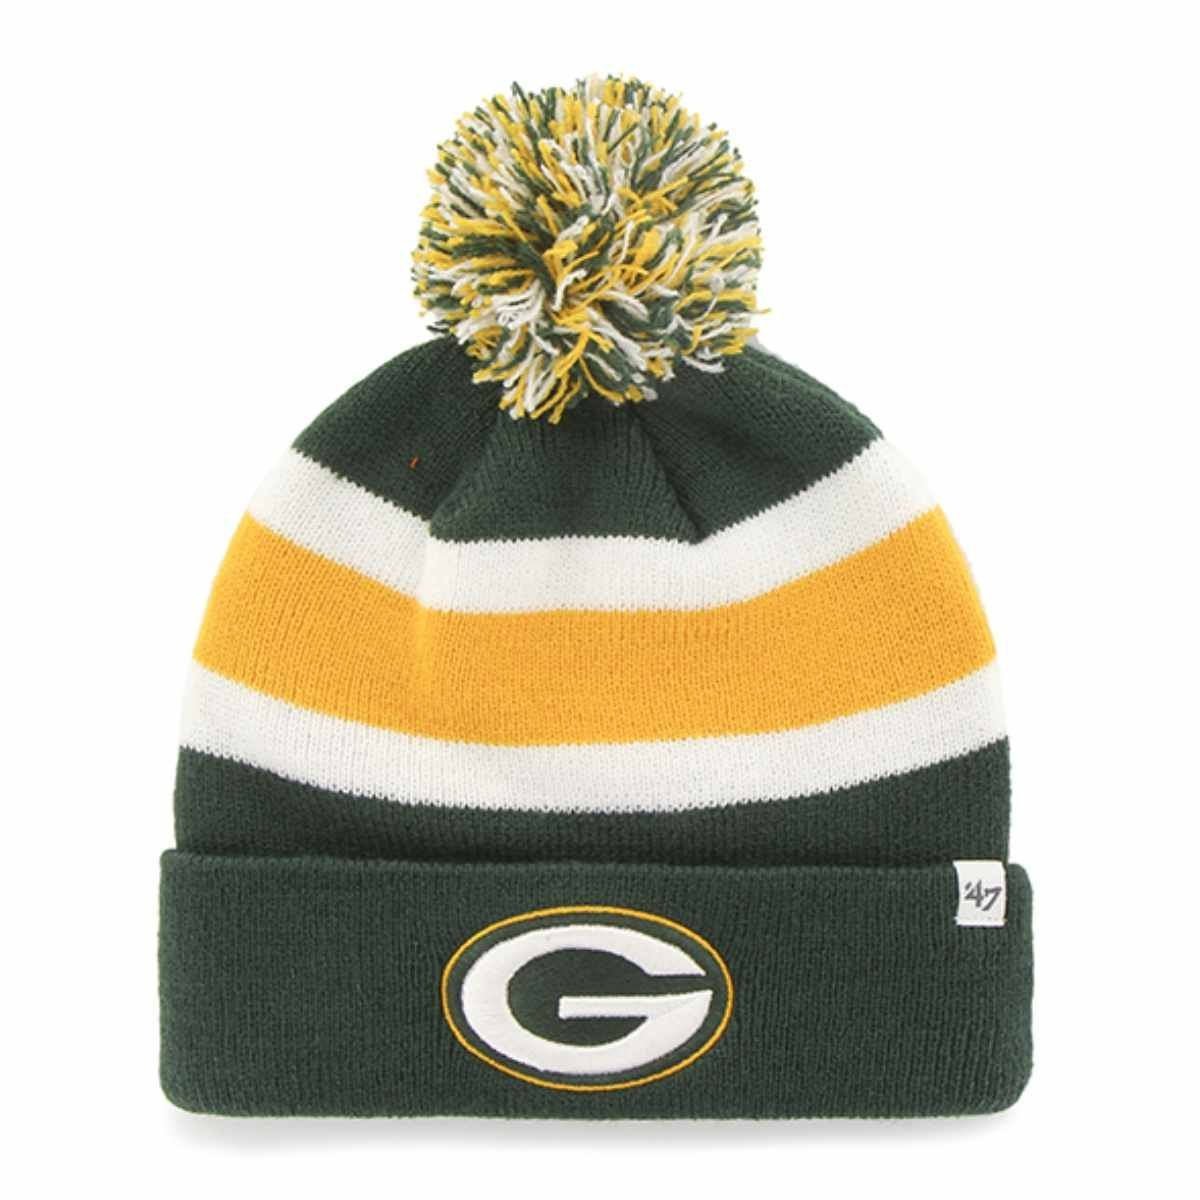 e9ce6f31976 Get Quotations · Green Bay Packers 47 Brand Green Breakaway Knit Cuff Beanie  Poofball Hat Cap